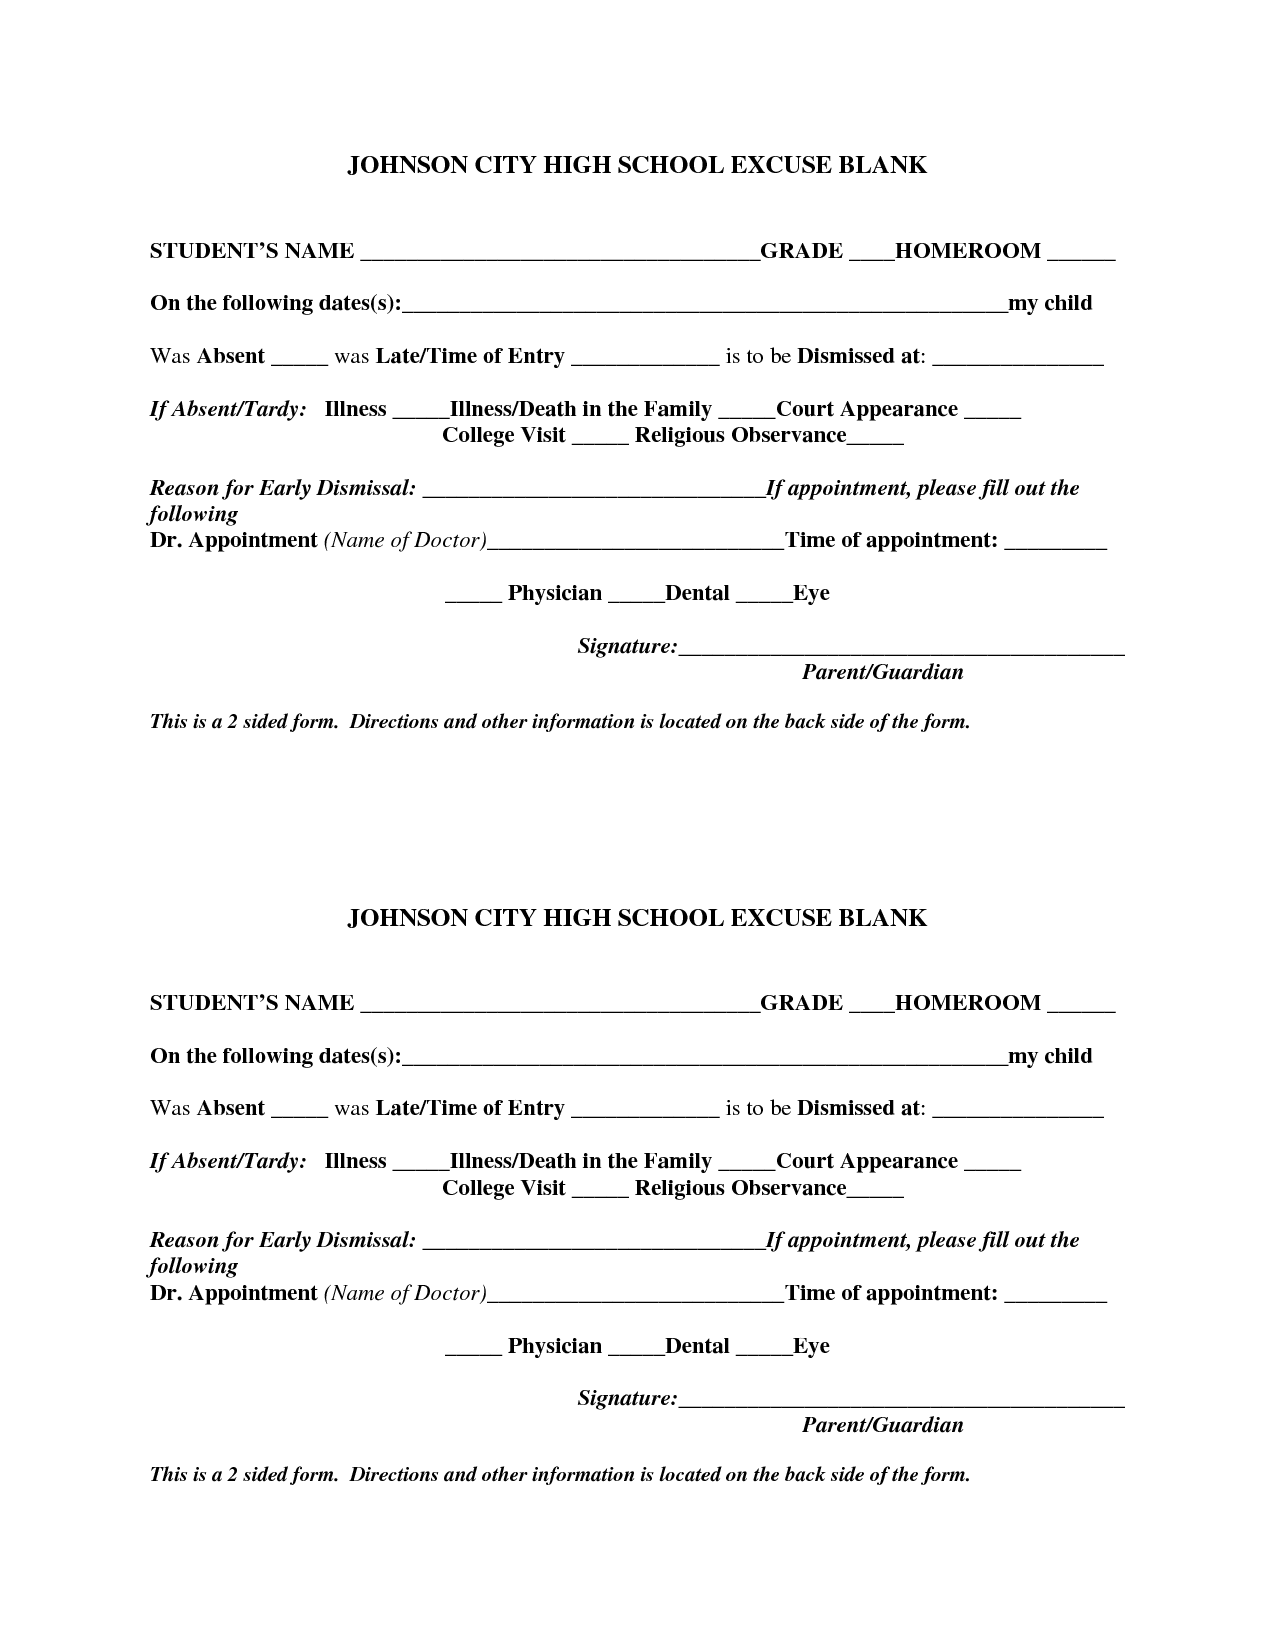 7 Images of Blank Printable Doctor Excuse Form